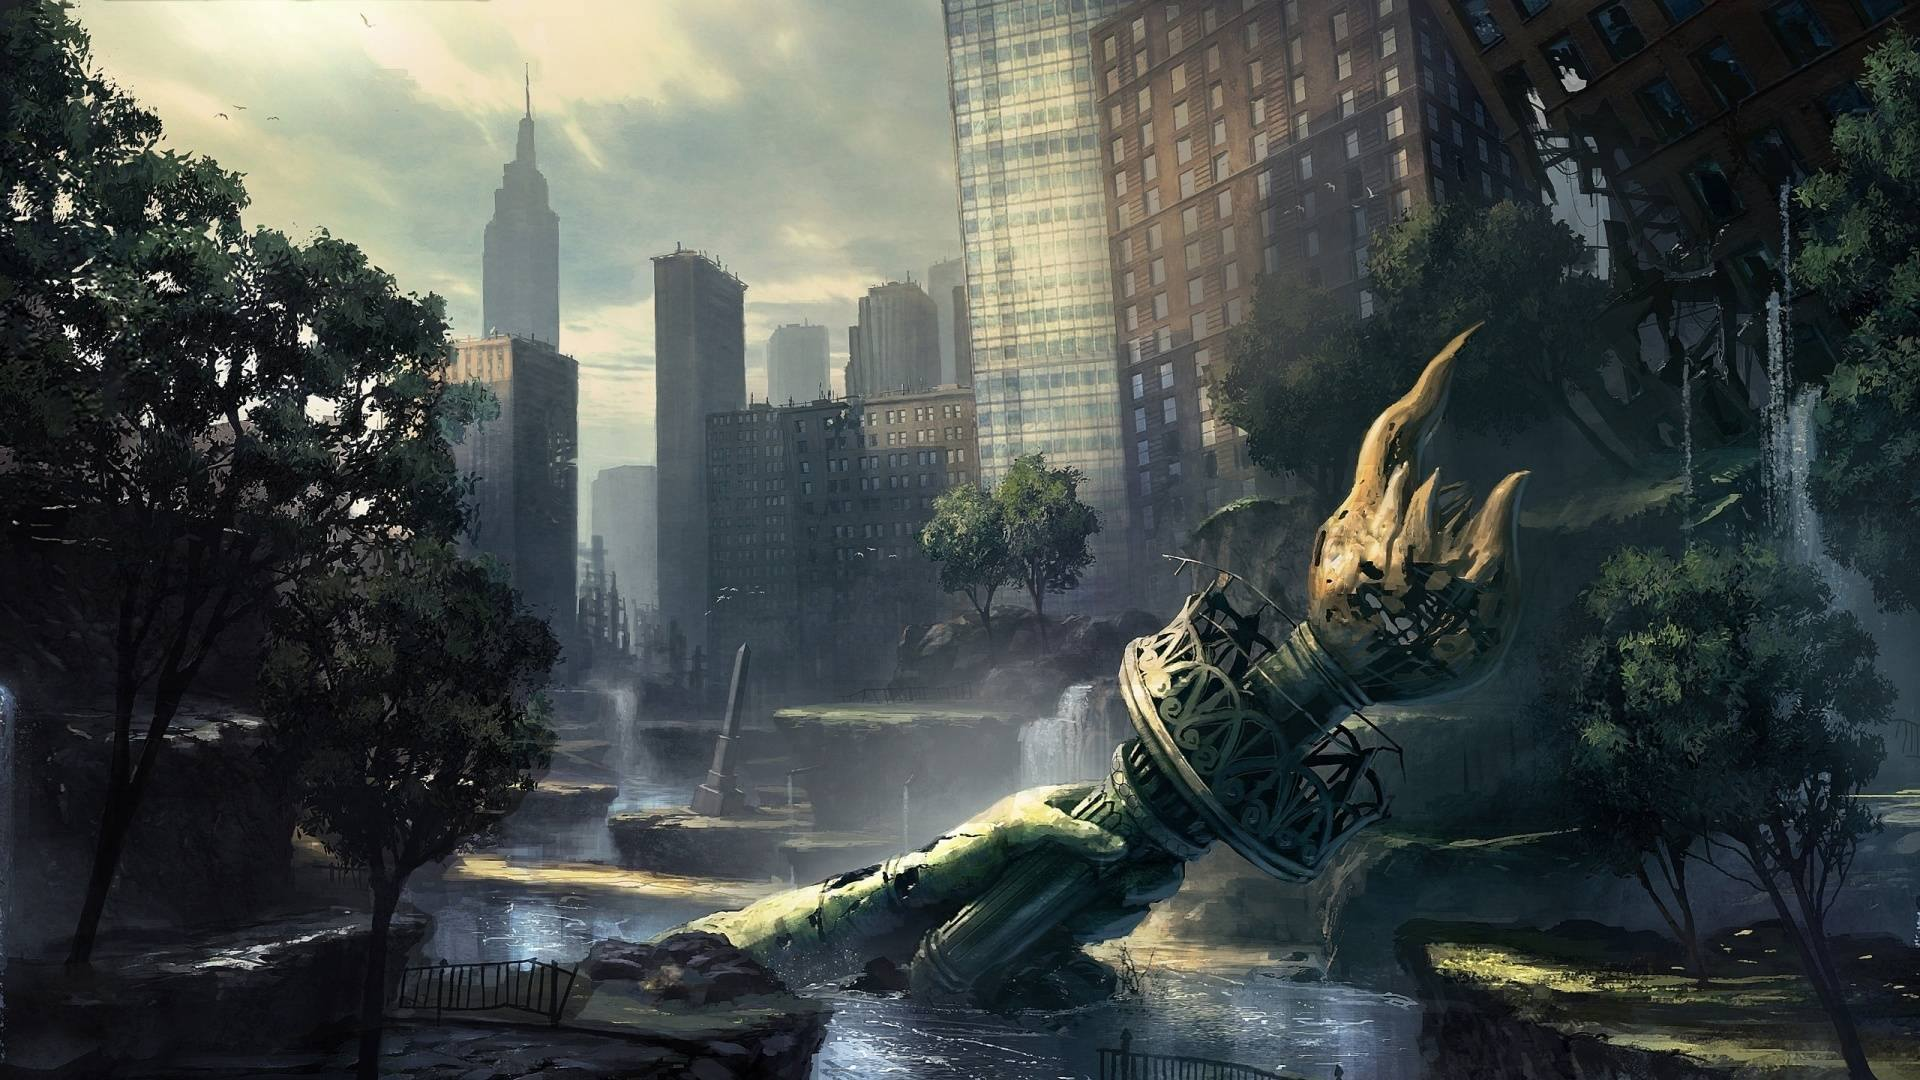 Adam et Eve_tome:2_page:3_  crysis-2-wallpaper-full-hd-1080p-xbox-360